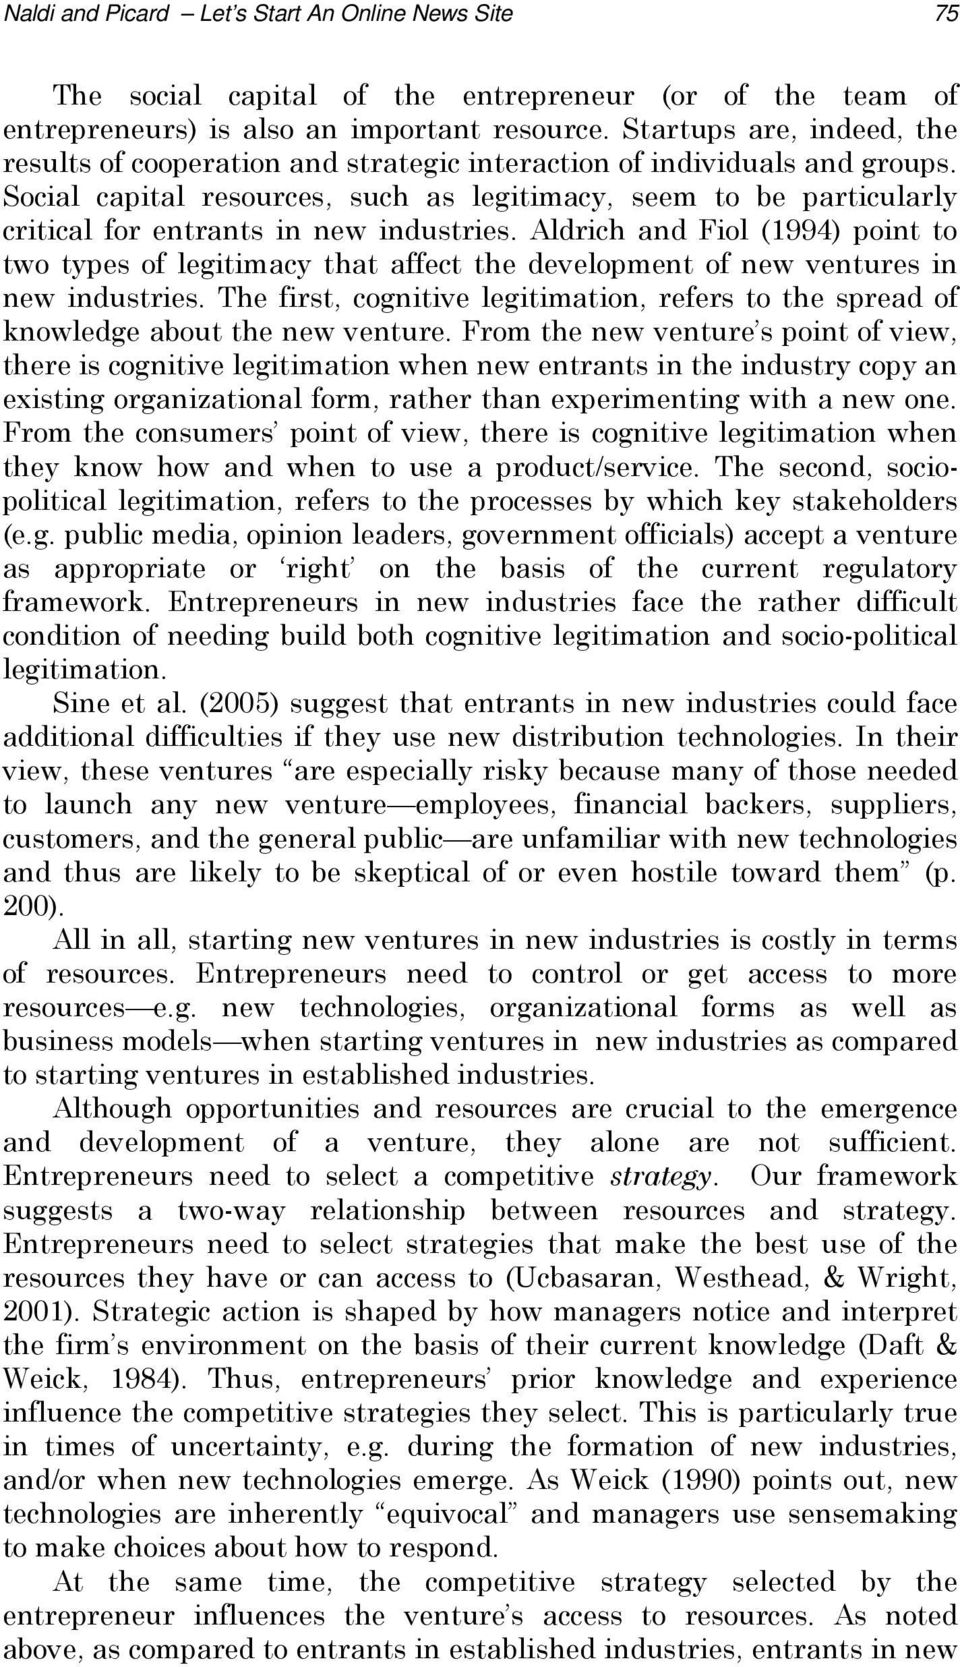 Social capital resources, such as legitimacy, seem to be particularly critical for entrants in new industries.